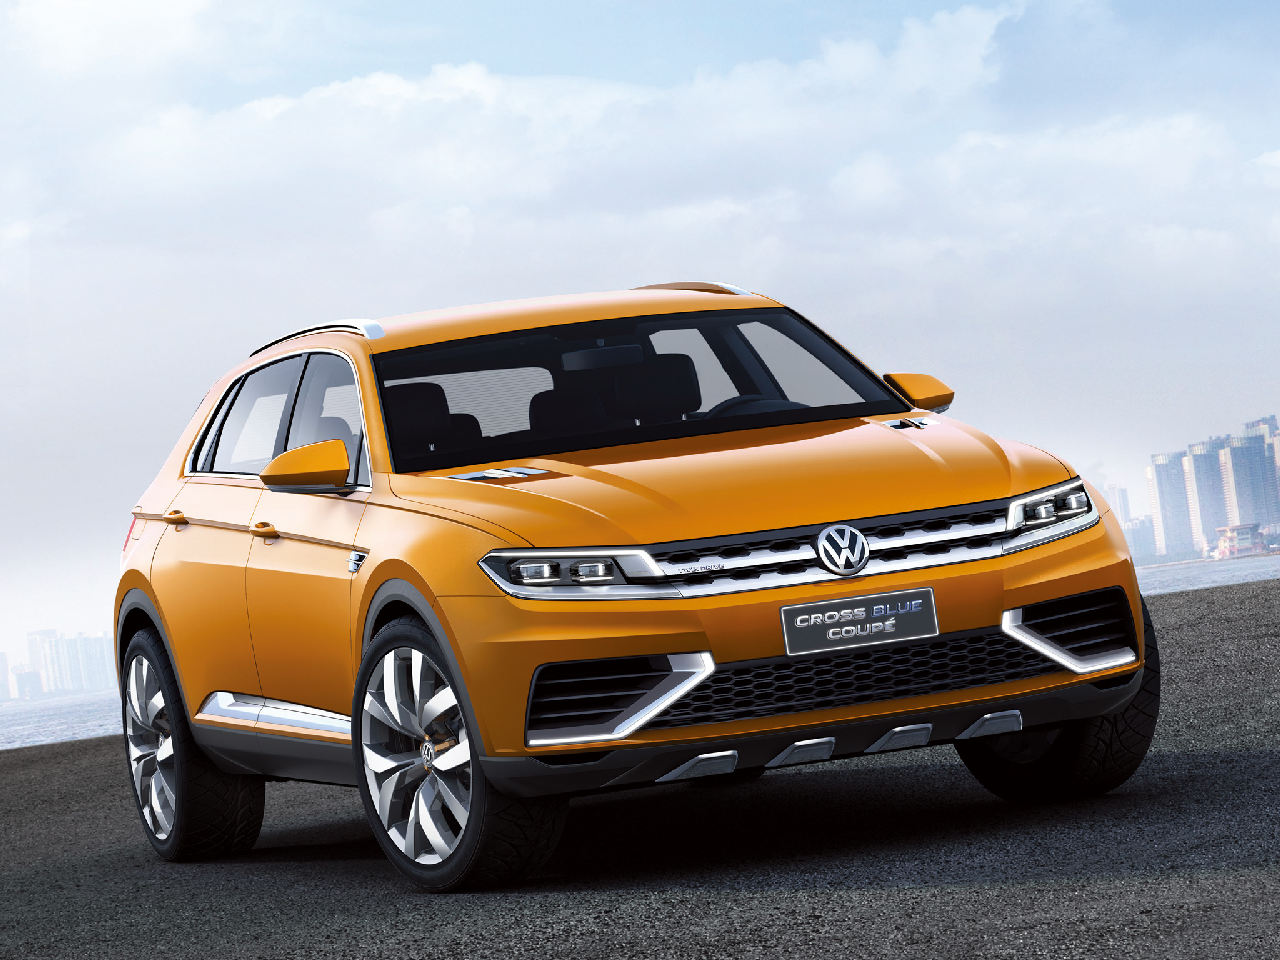 Volkswagen Crossblue Coupe Concept 5